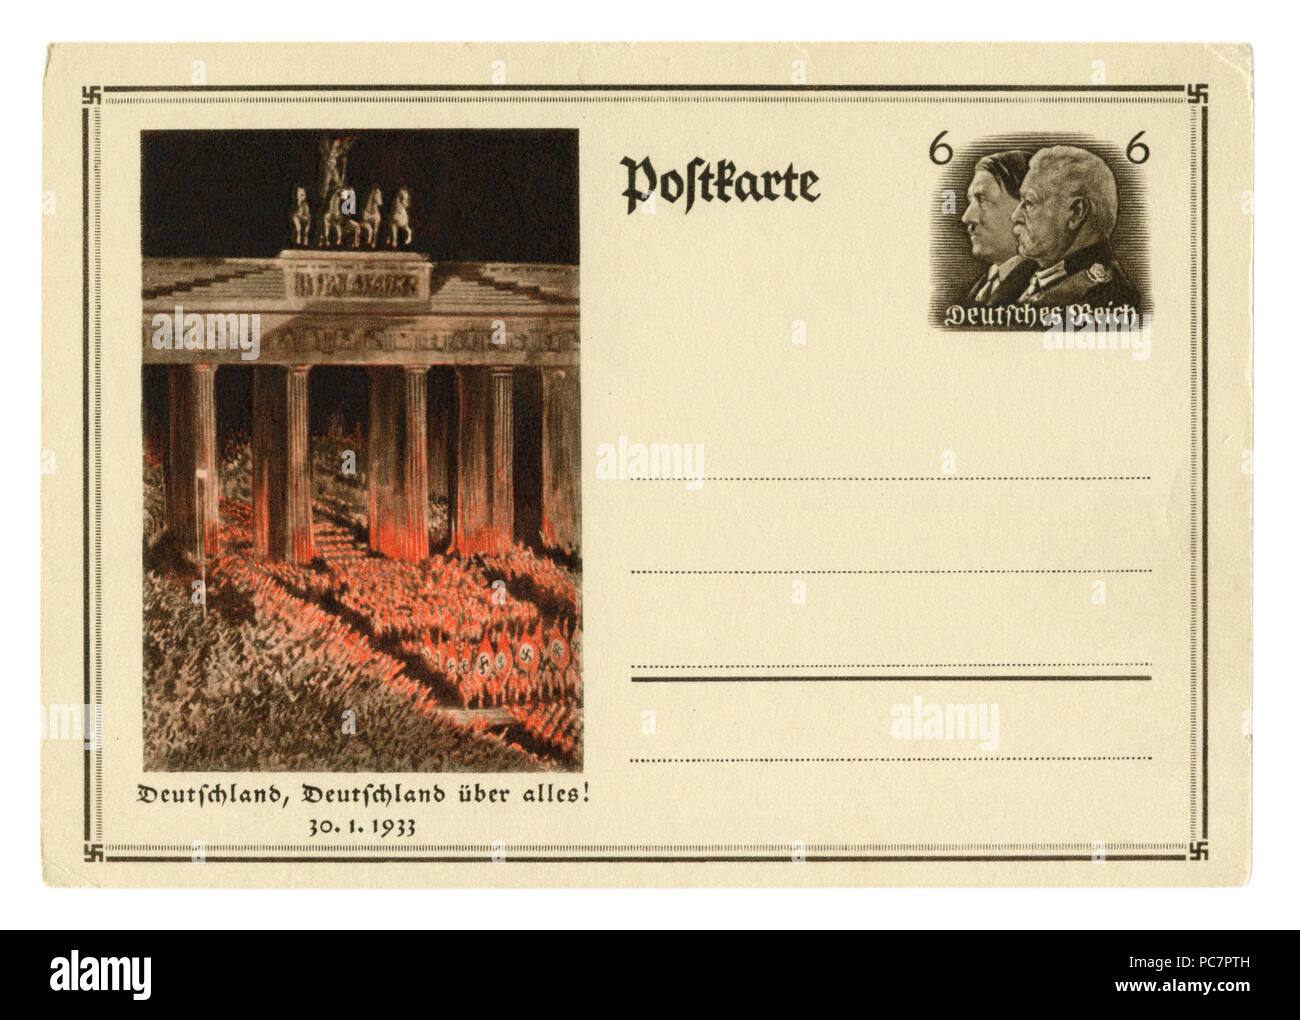 German historical postal card: Anniversary of the overthrow of power. SA troops pass by the Bradenburg gate. 30 january 1933, Germany, Third Reich - Stock Image